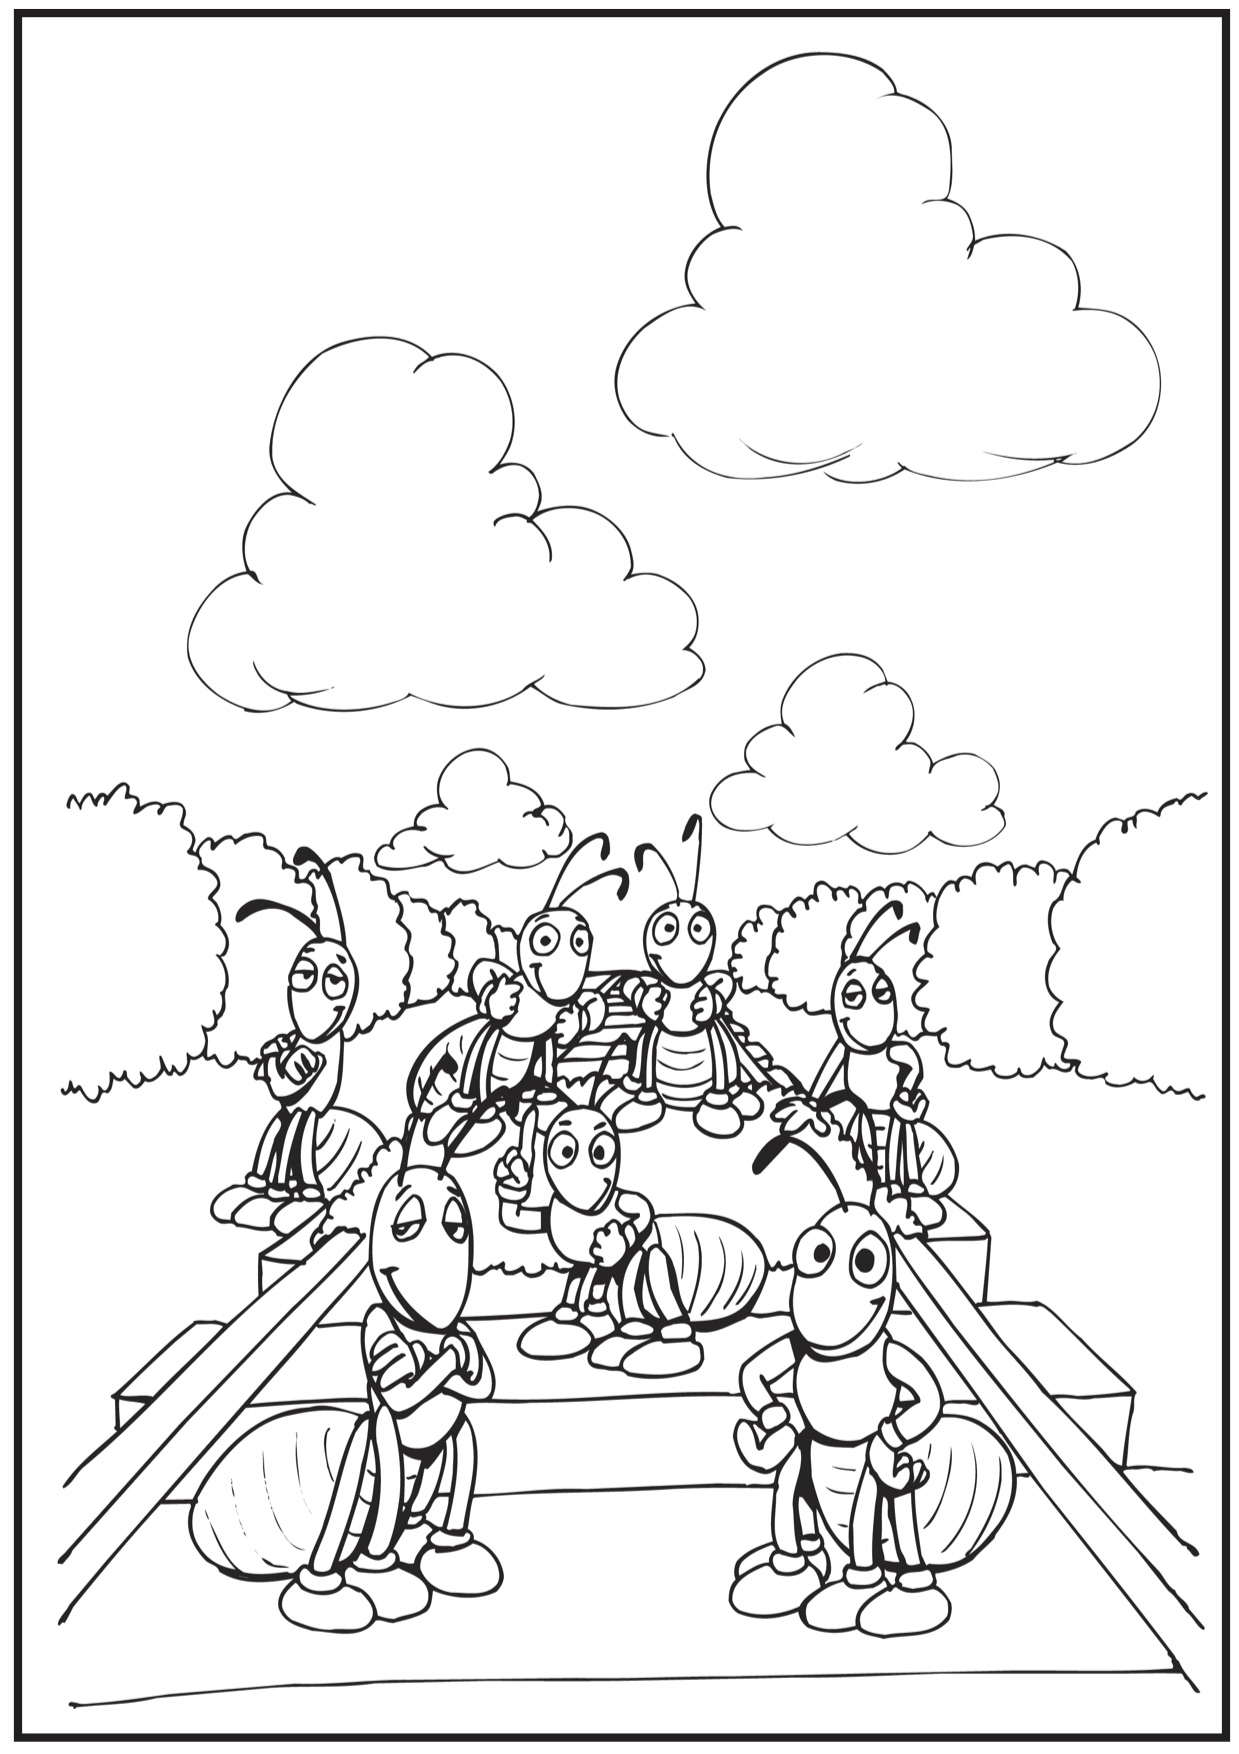 Train Track Coloring Page At Getdrawings